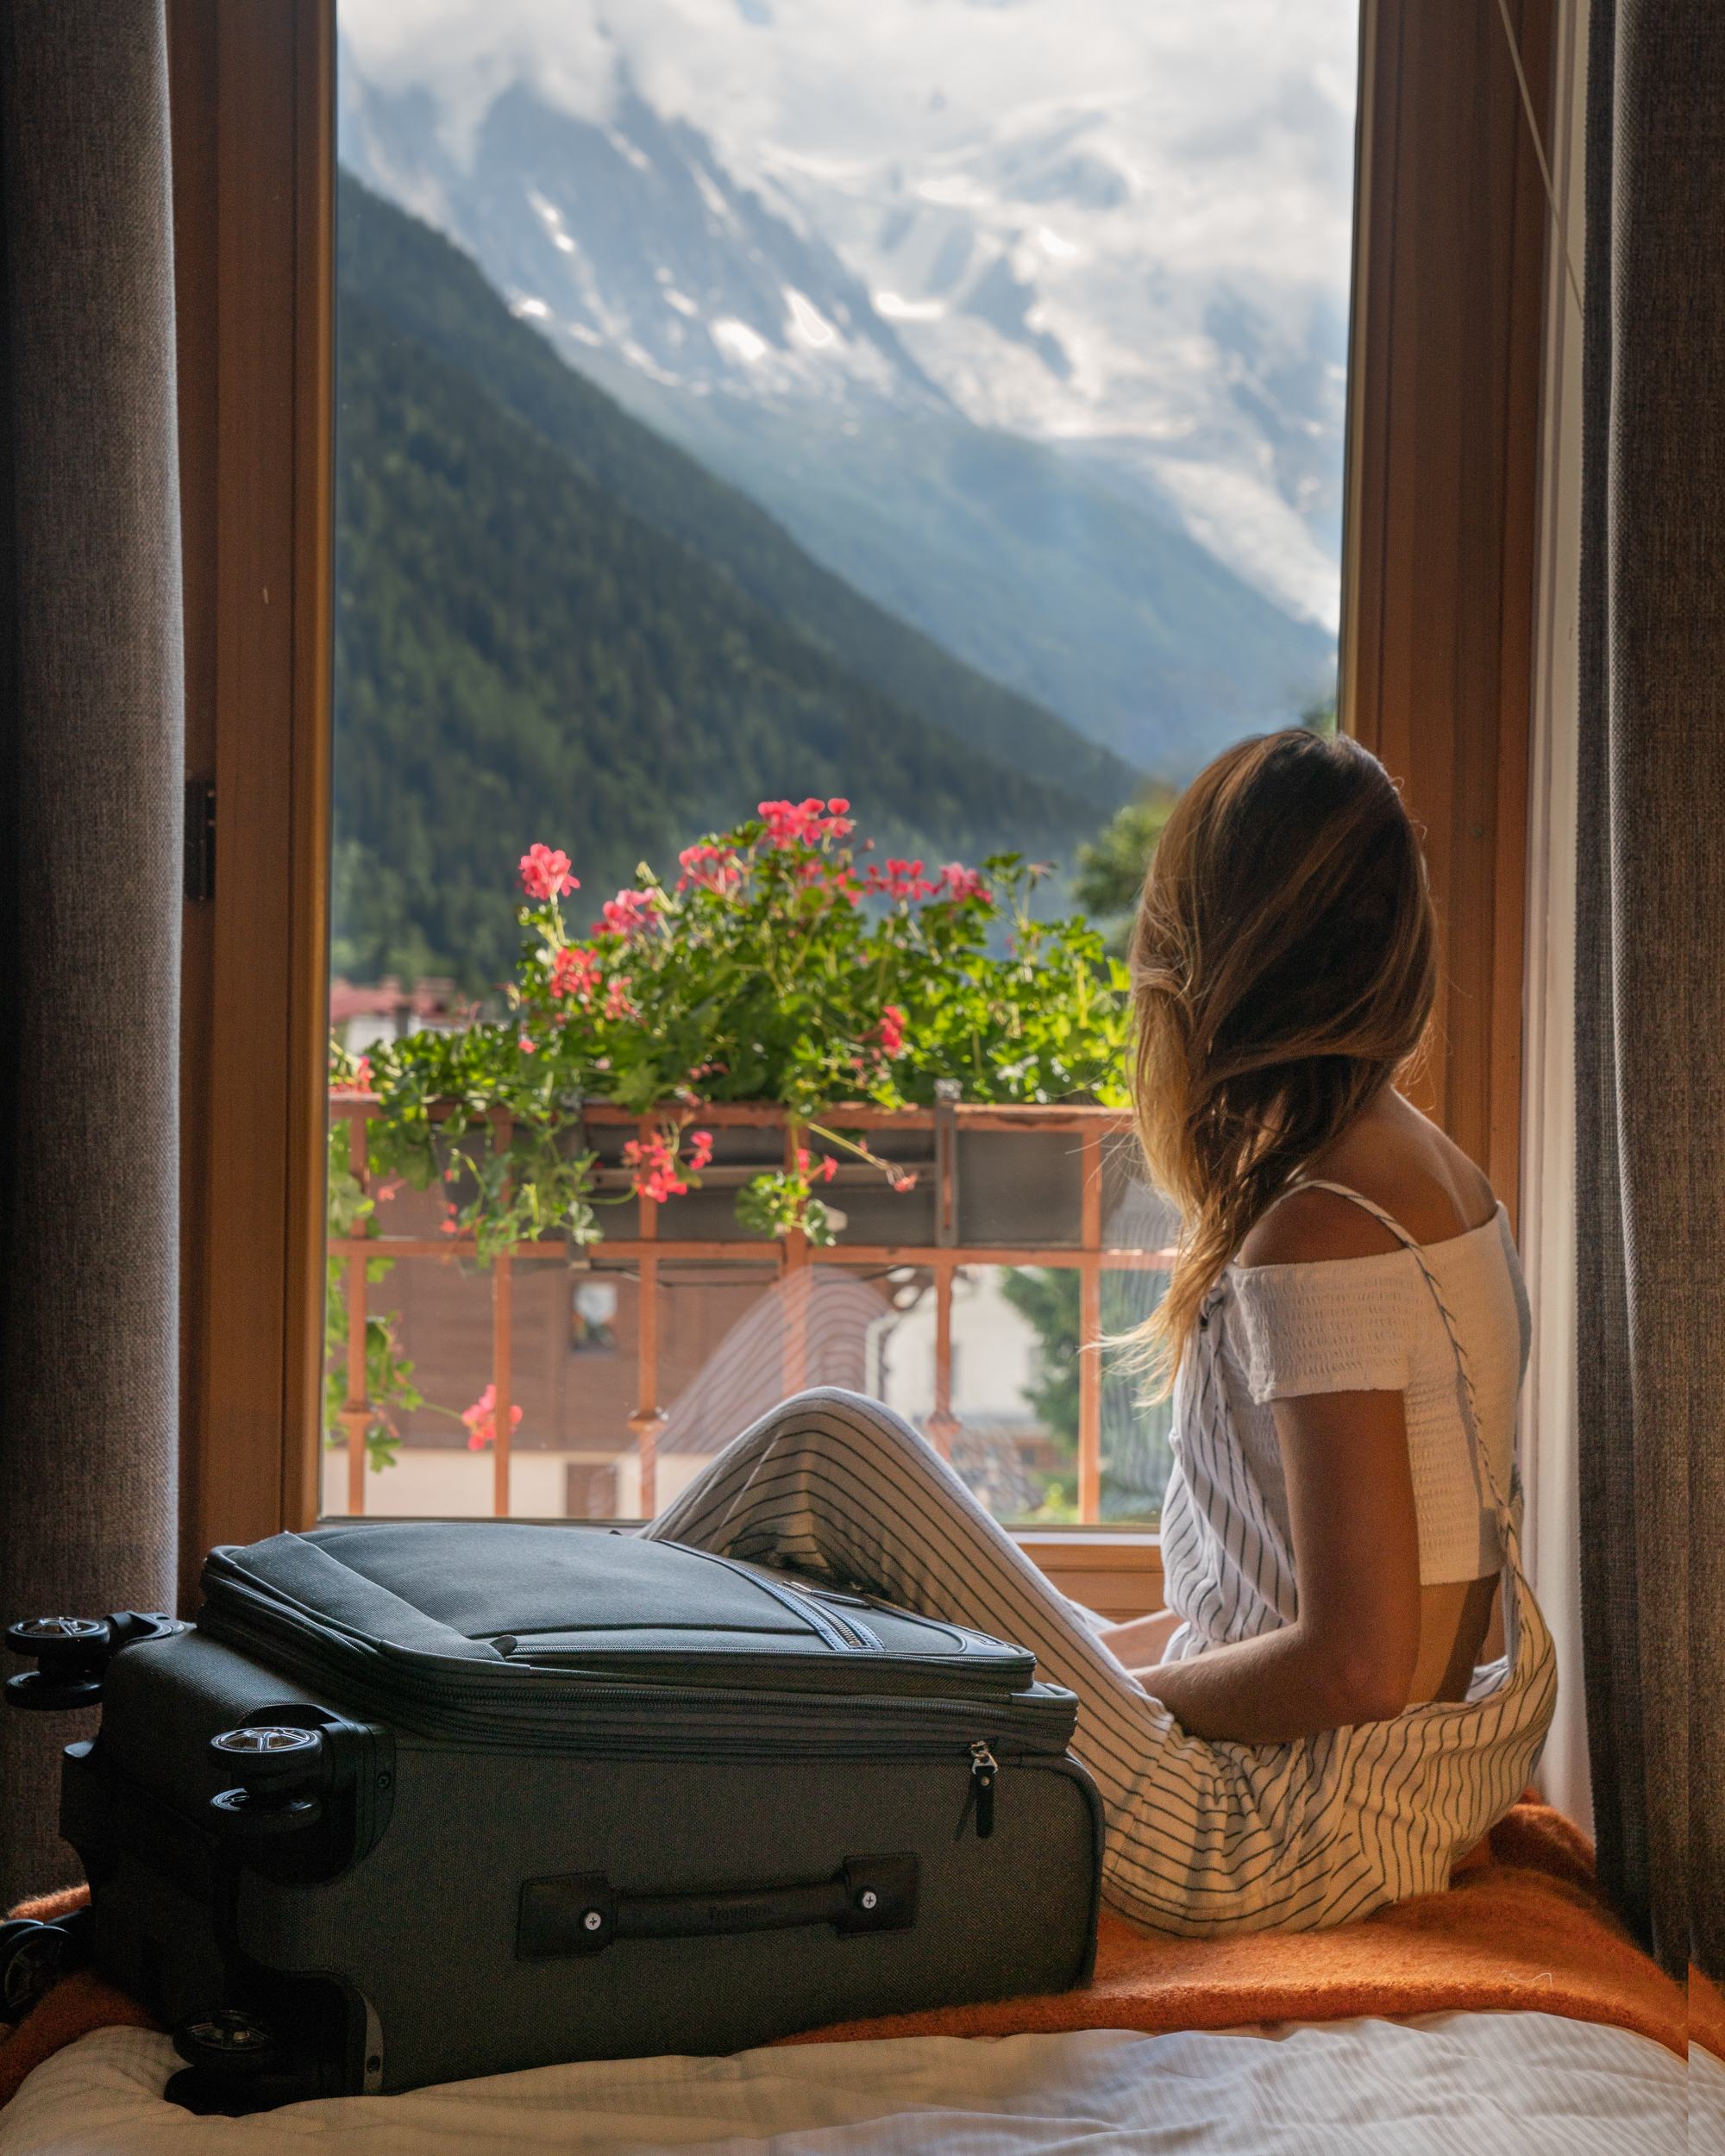 I was planning on continuing my travels through Europe after completing the Tour du Mont Blanc with my family. Luckily we were able to arrange to have our luggage shuttled between a few of the towns we knew we would be stopping at, so I didn't have to carry all my belonging on the trail.